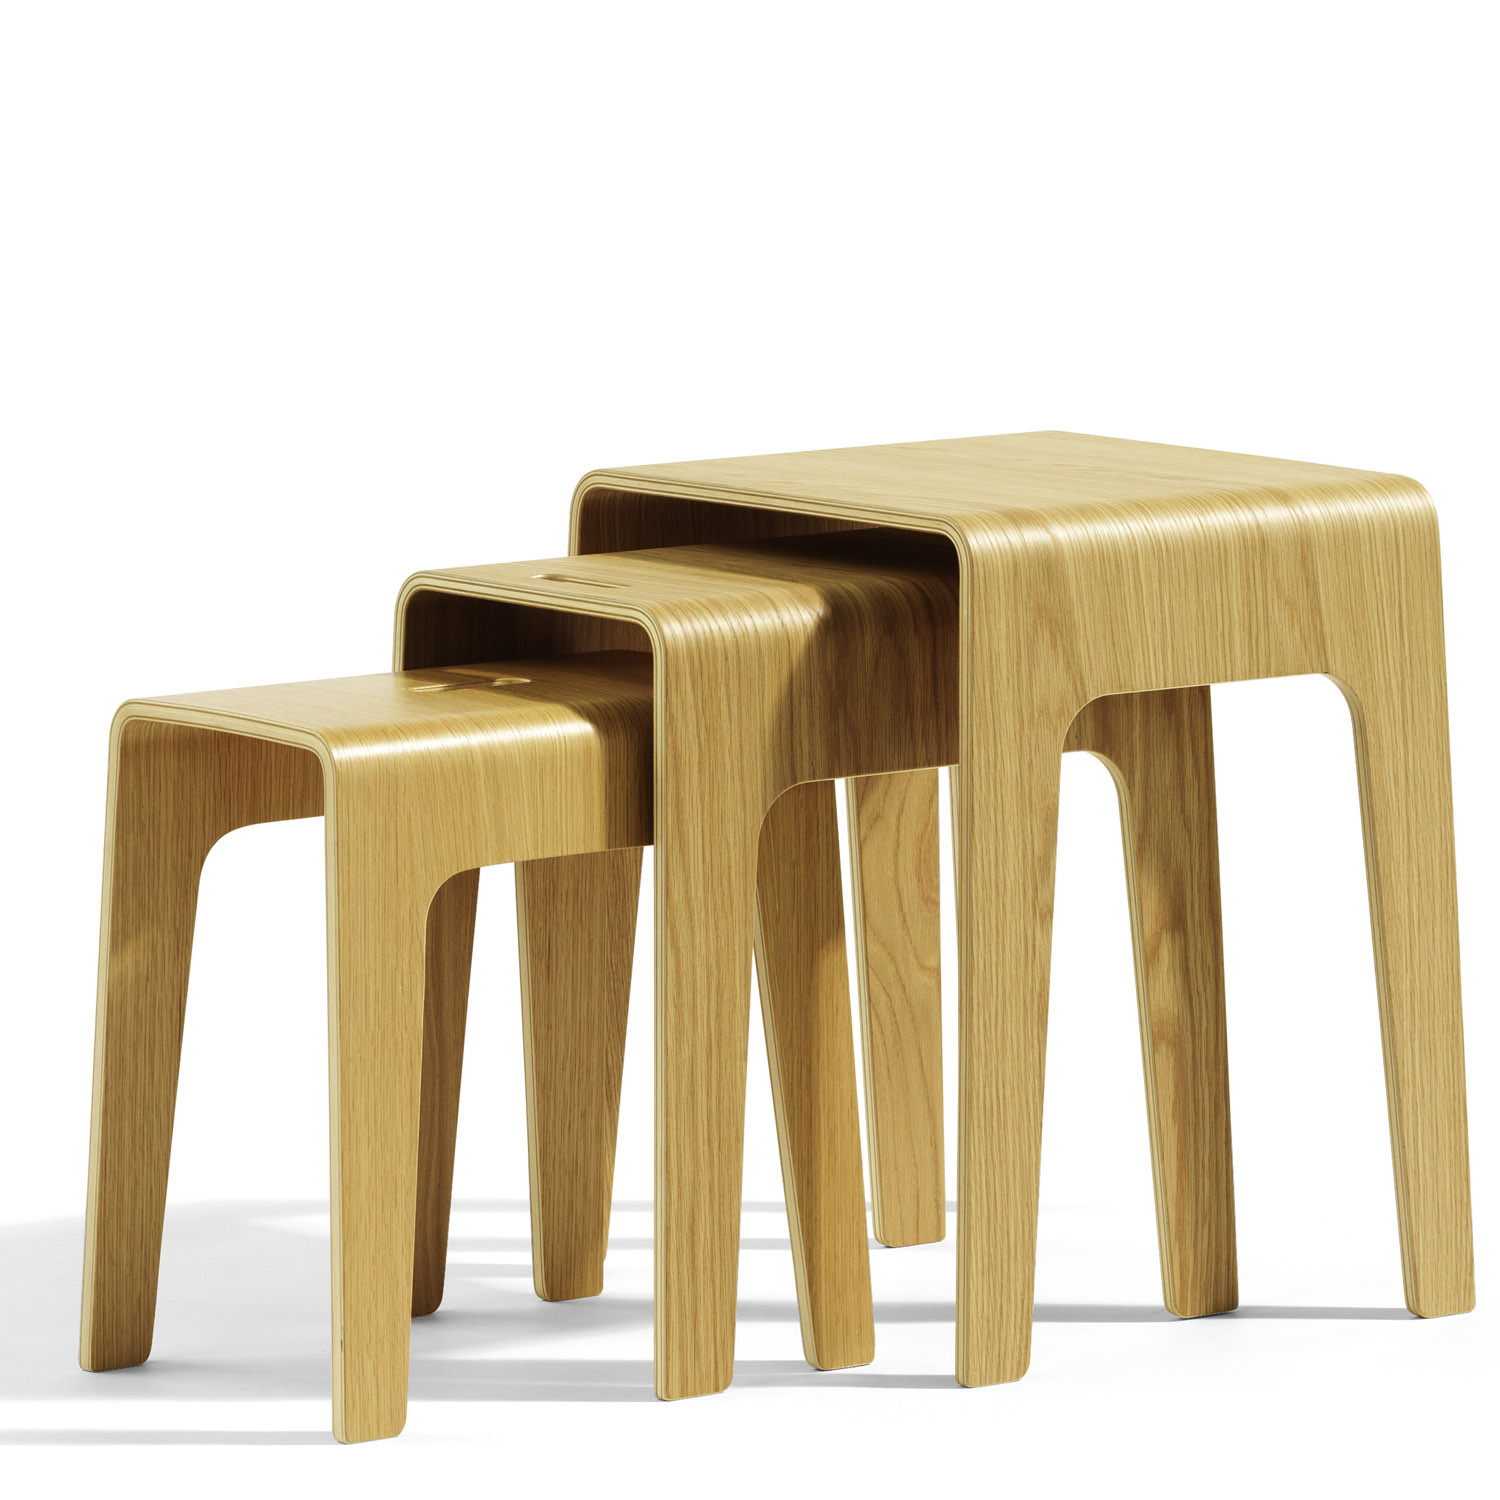 Bimbed Stacking Stools for Breakout Zones